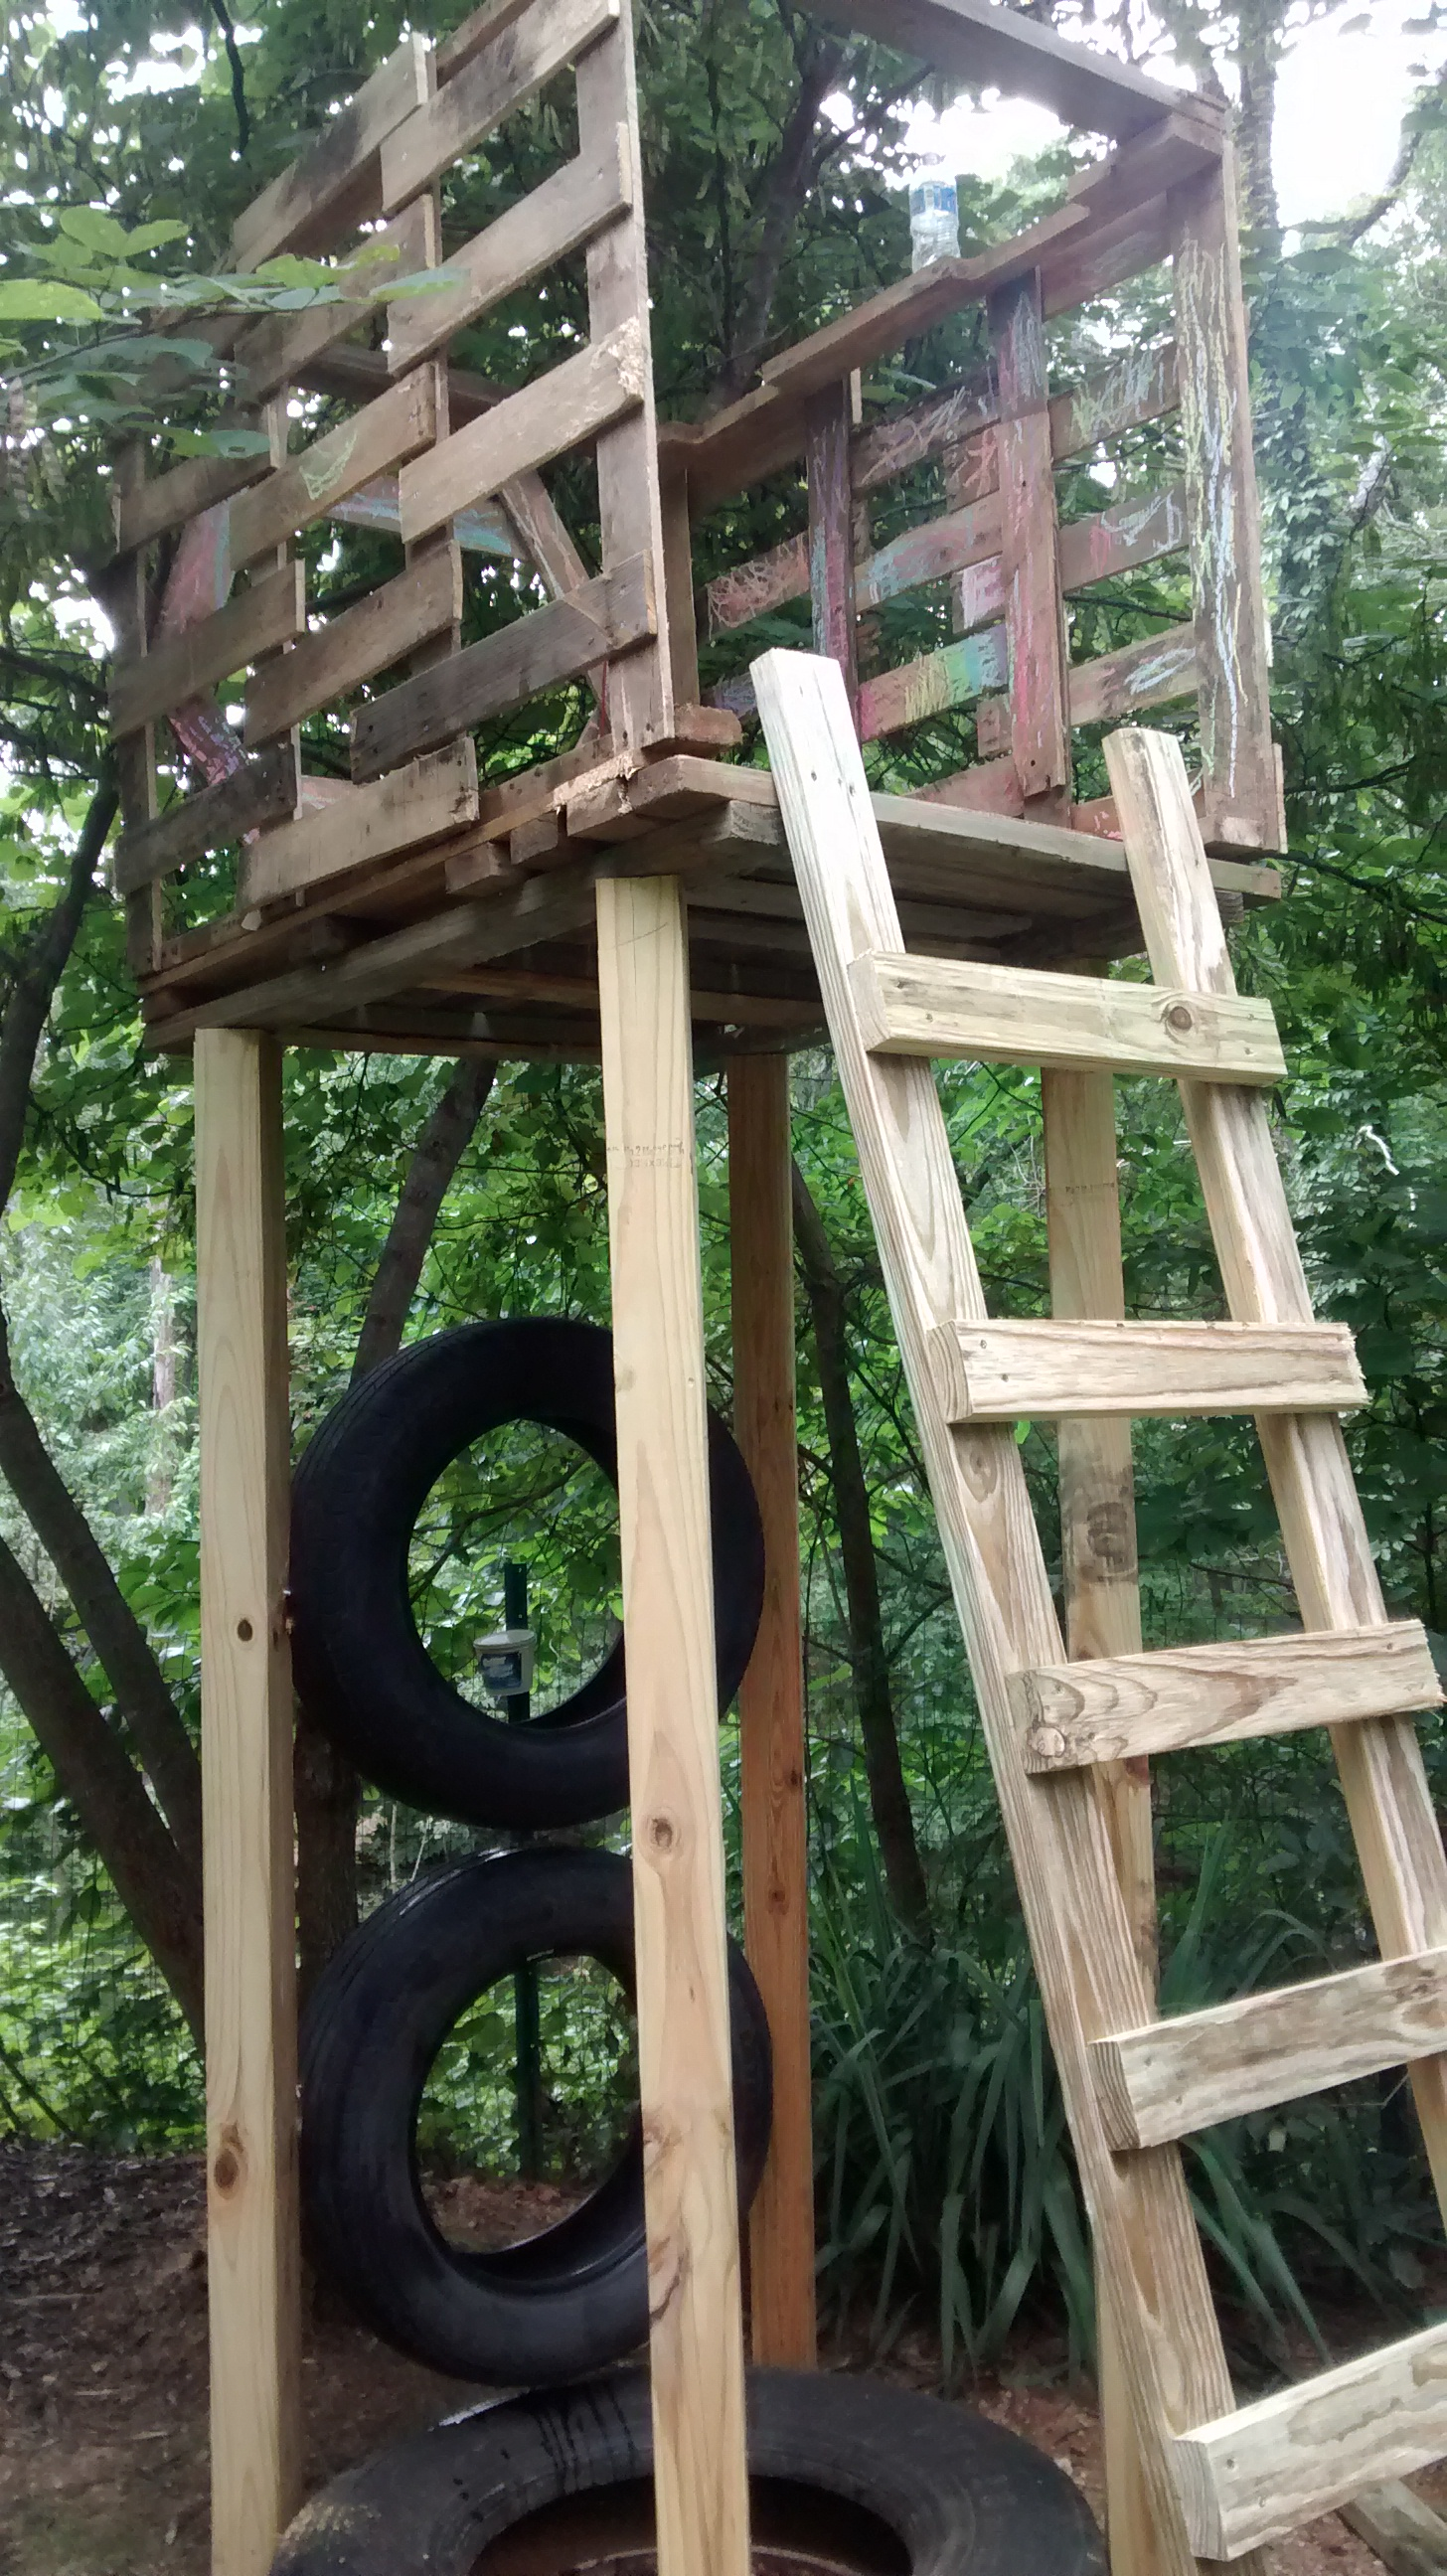 build stuff with tires and pallets | Belle of Dirt